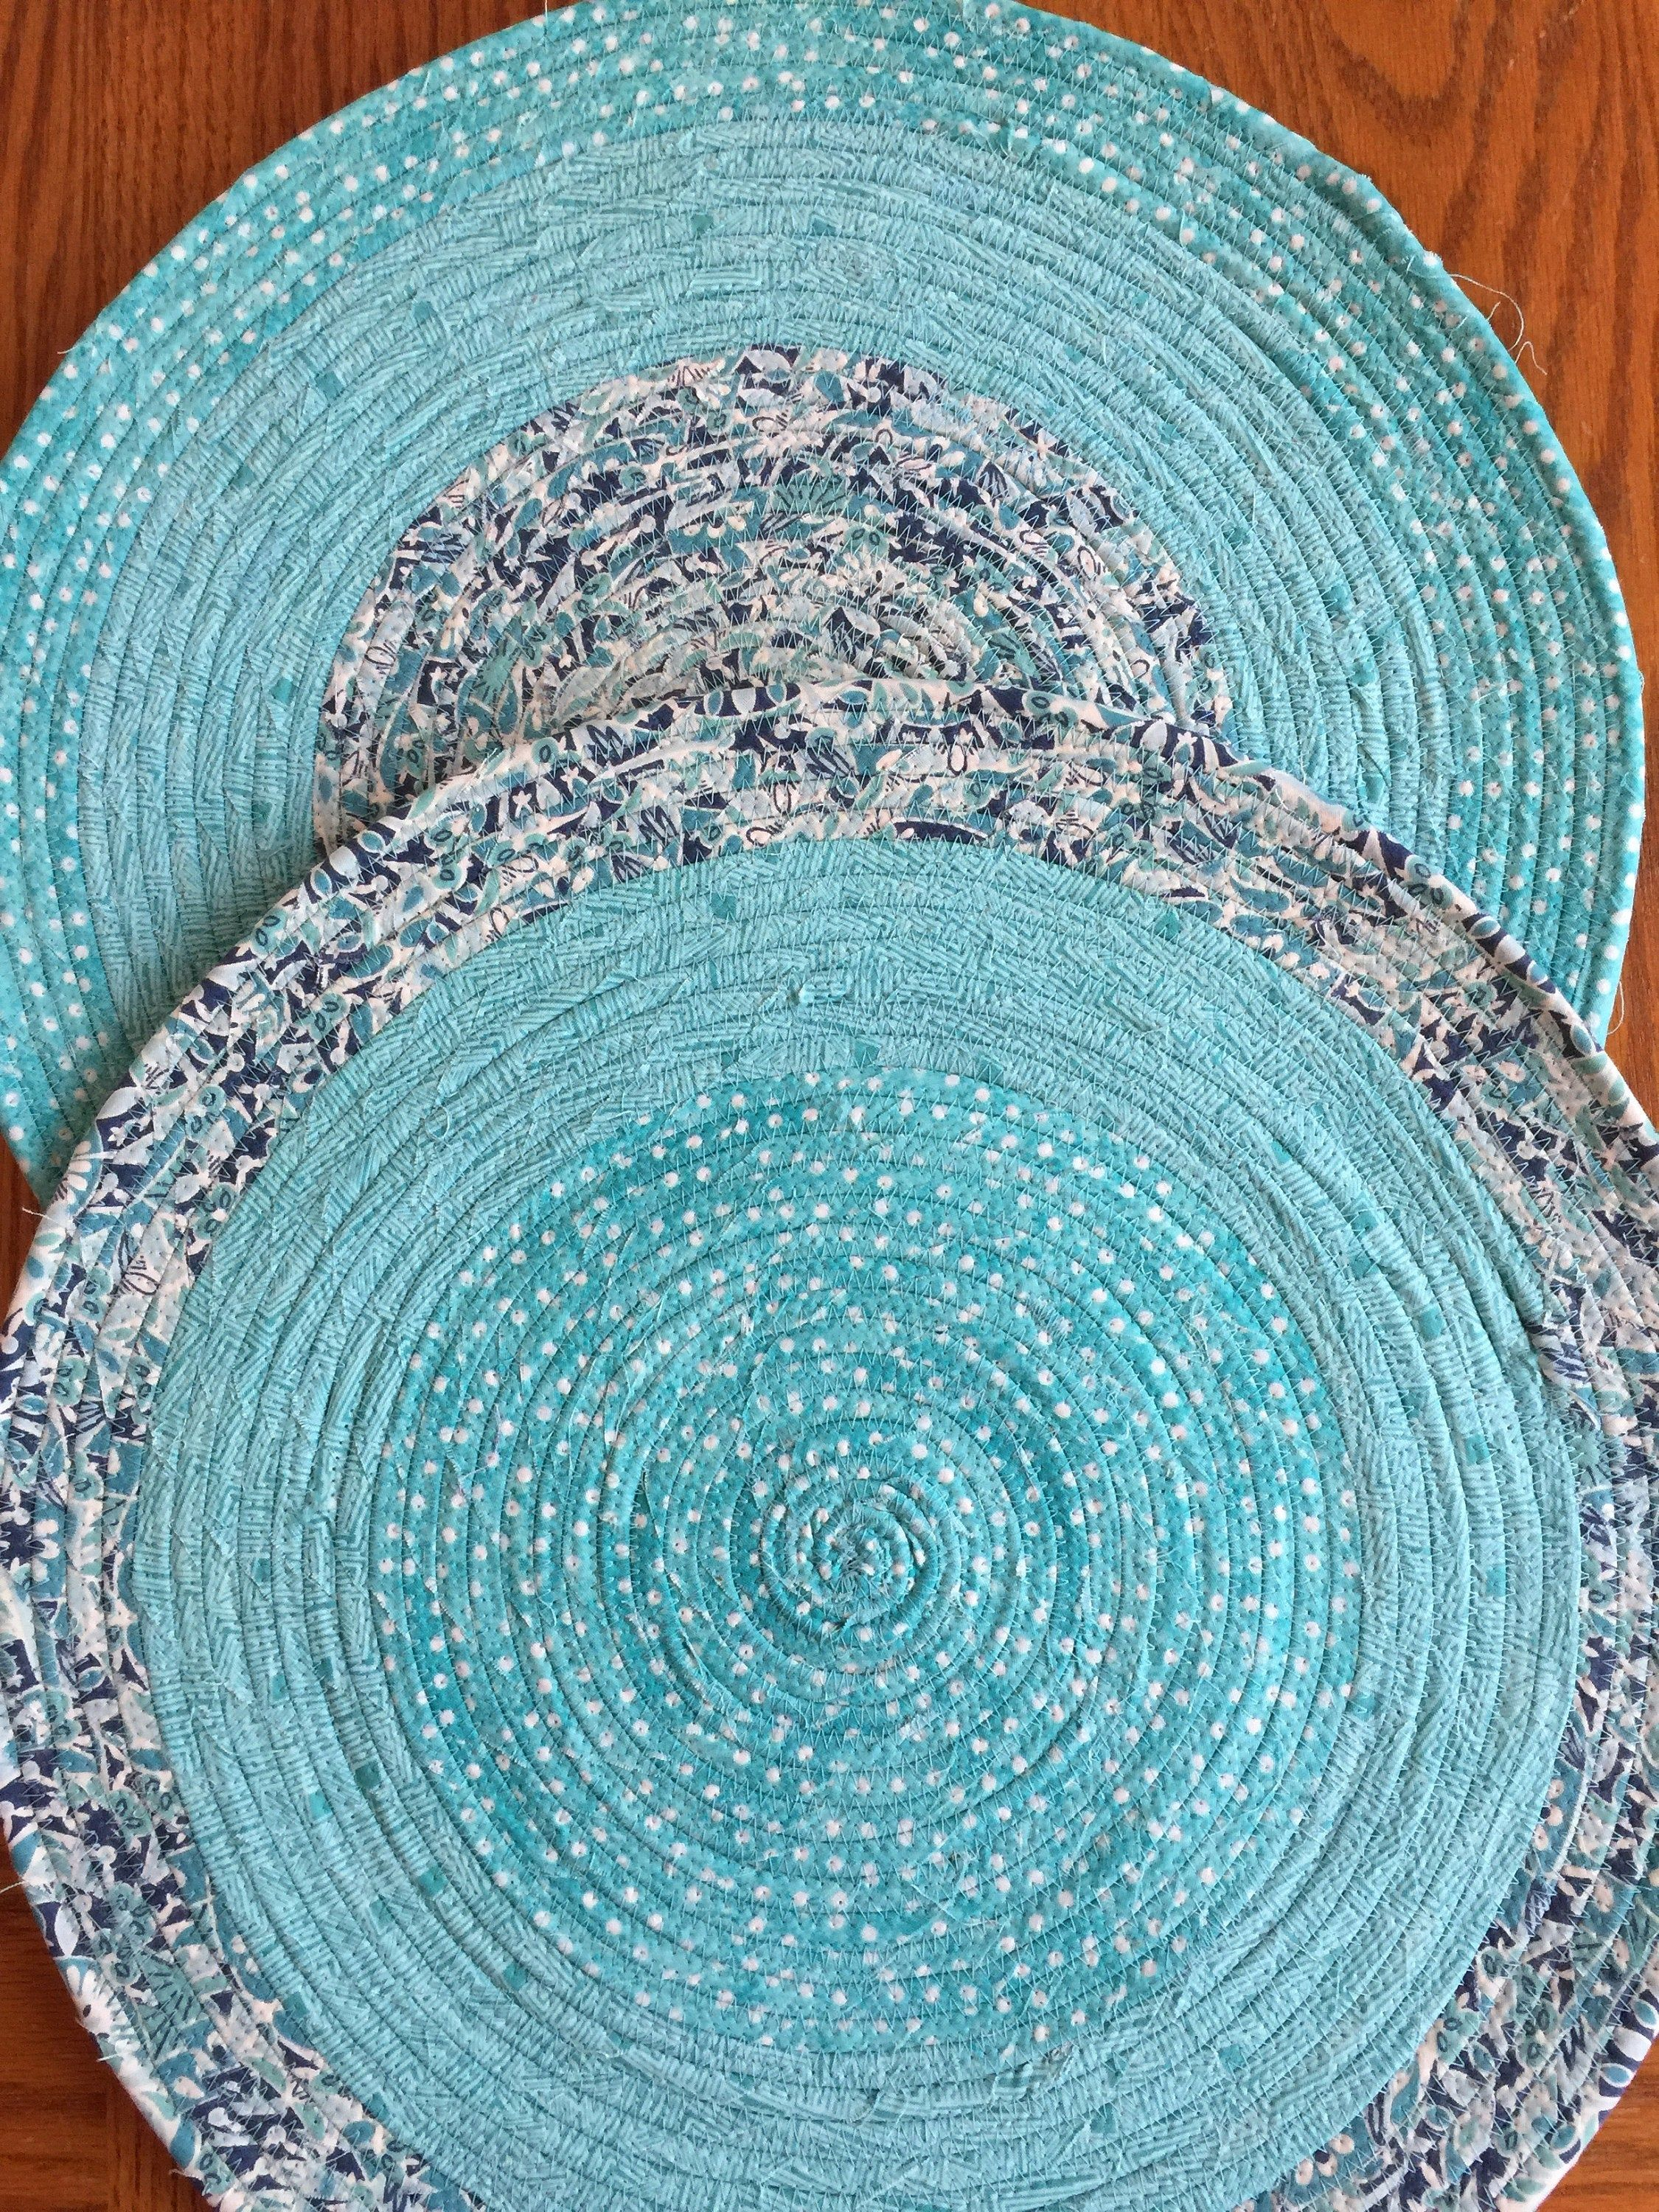 Large Table Mat One Large Placemat Dining Table Decor Table Fabric Placemats Placemats Blue Placemats